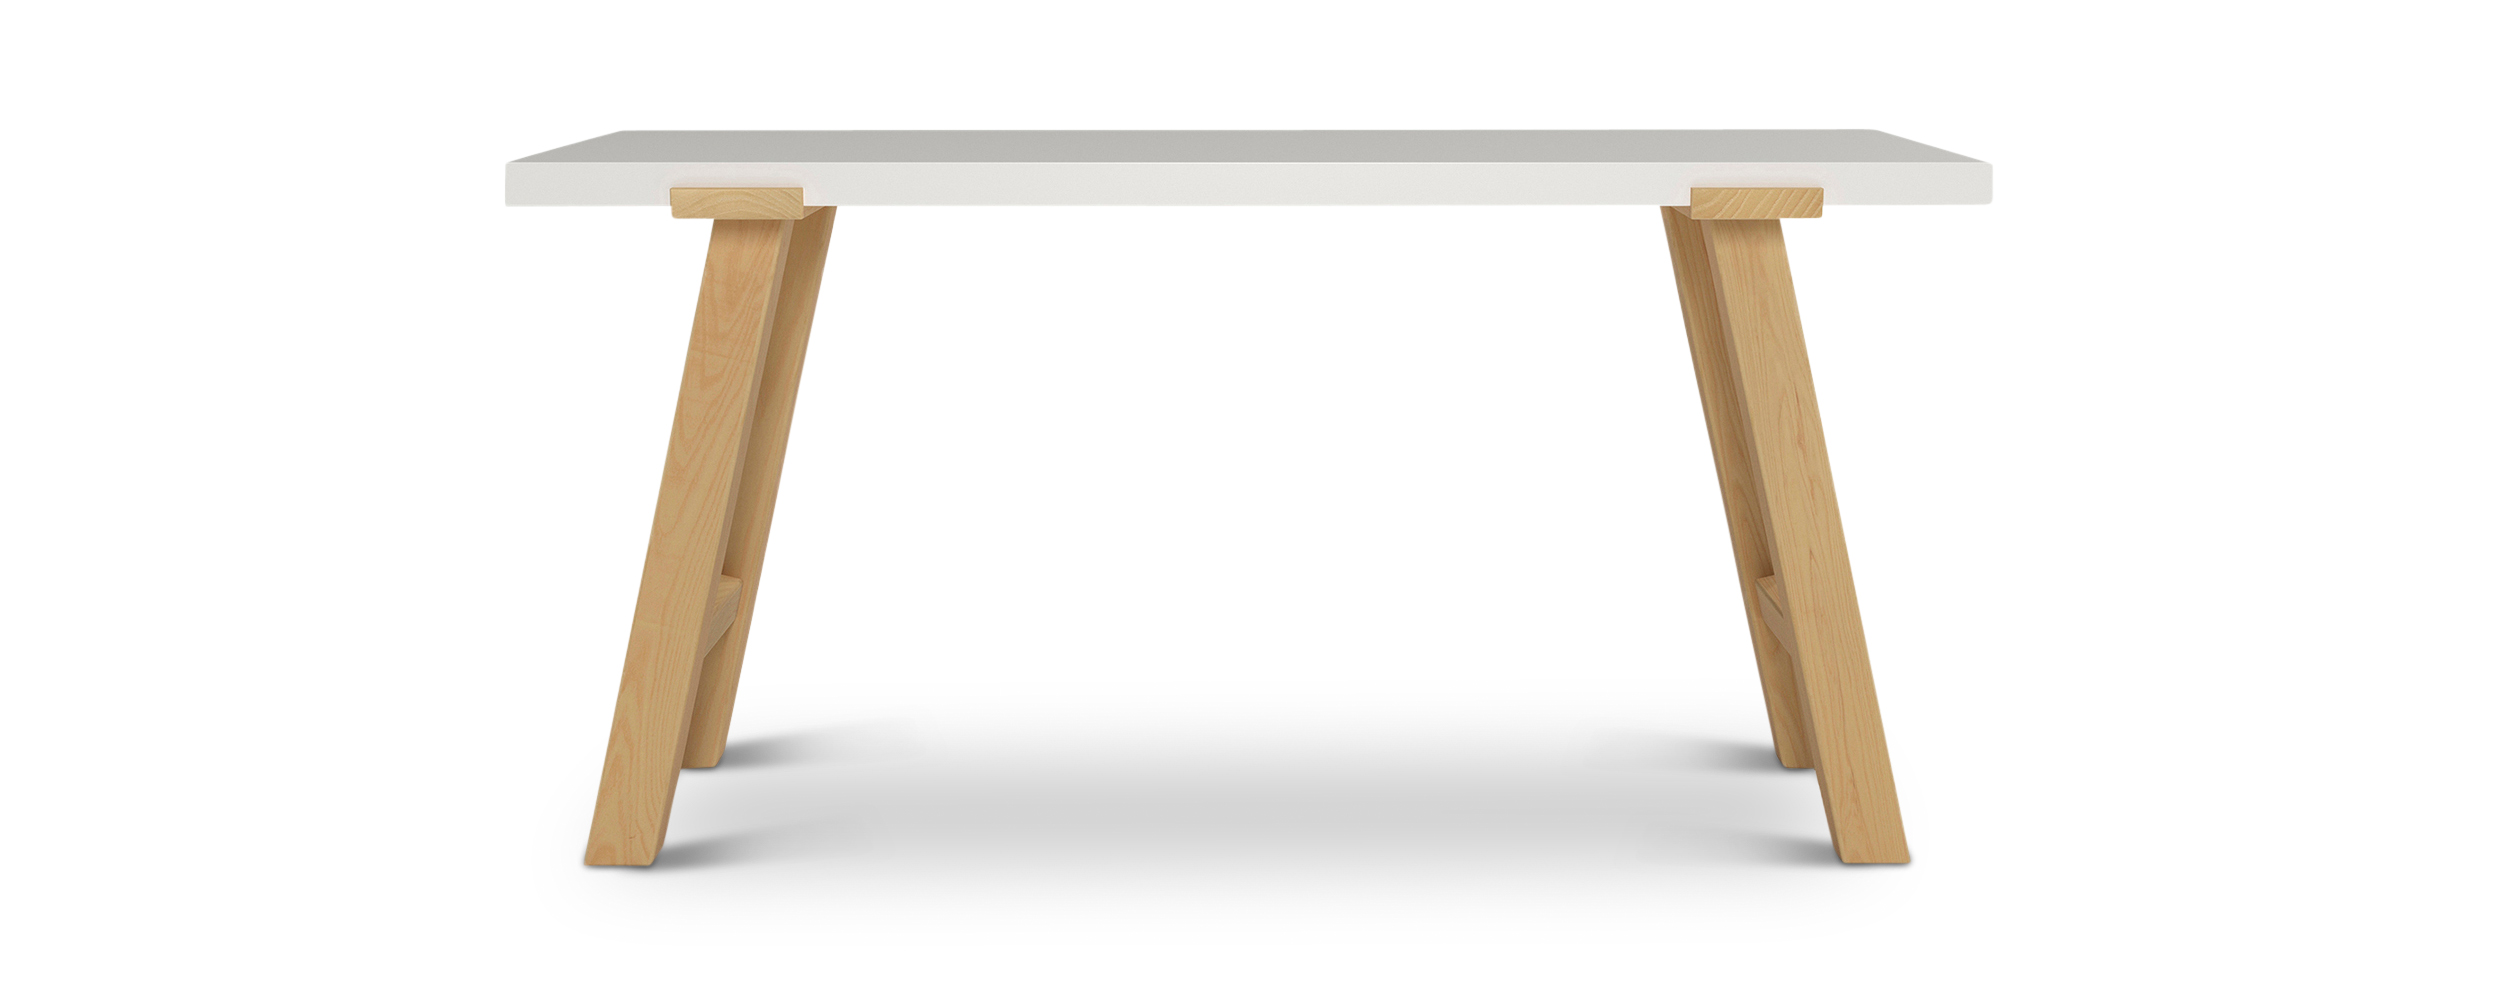 "Pulten.1 modern nordic desk with solid wood legs and a white top 60"" long"